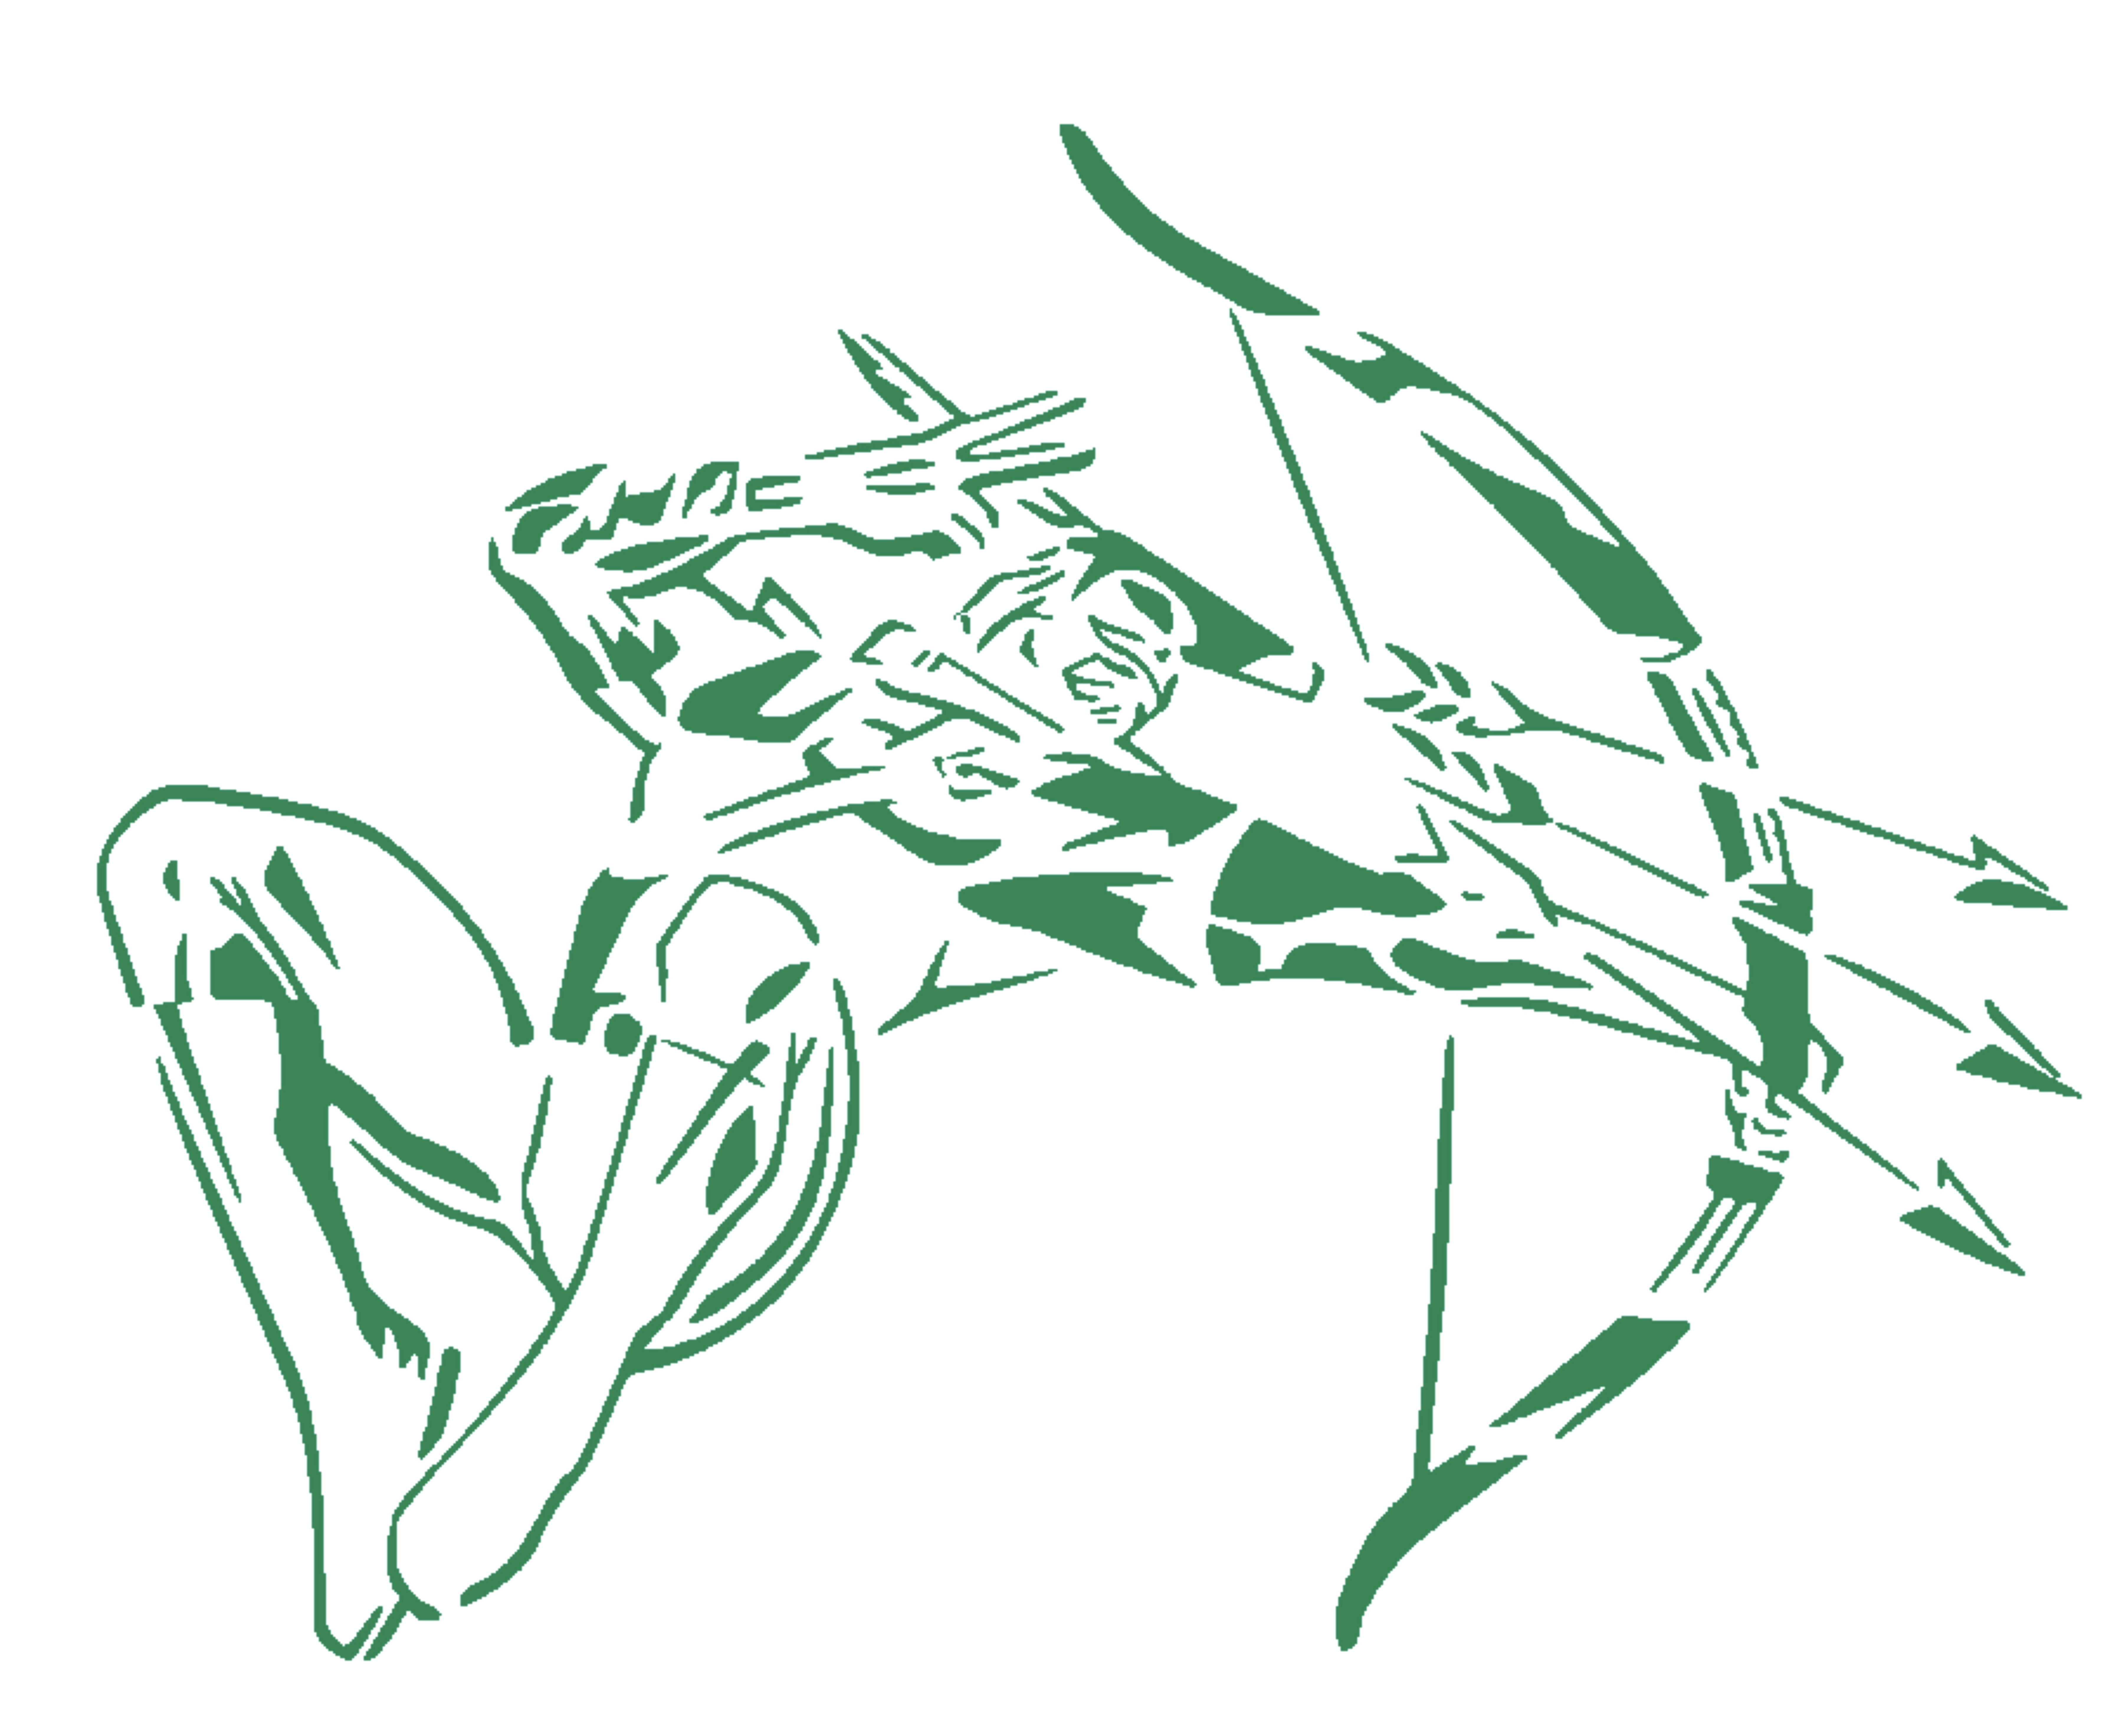 Green Arrow stencil